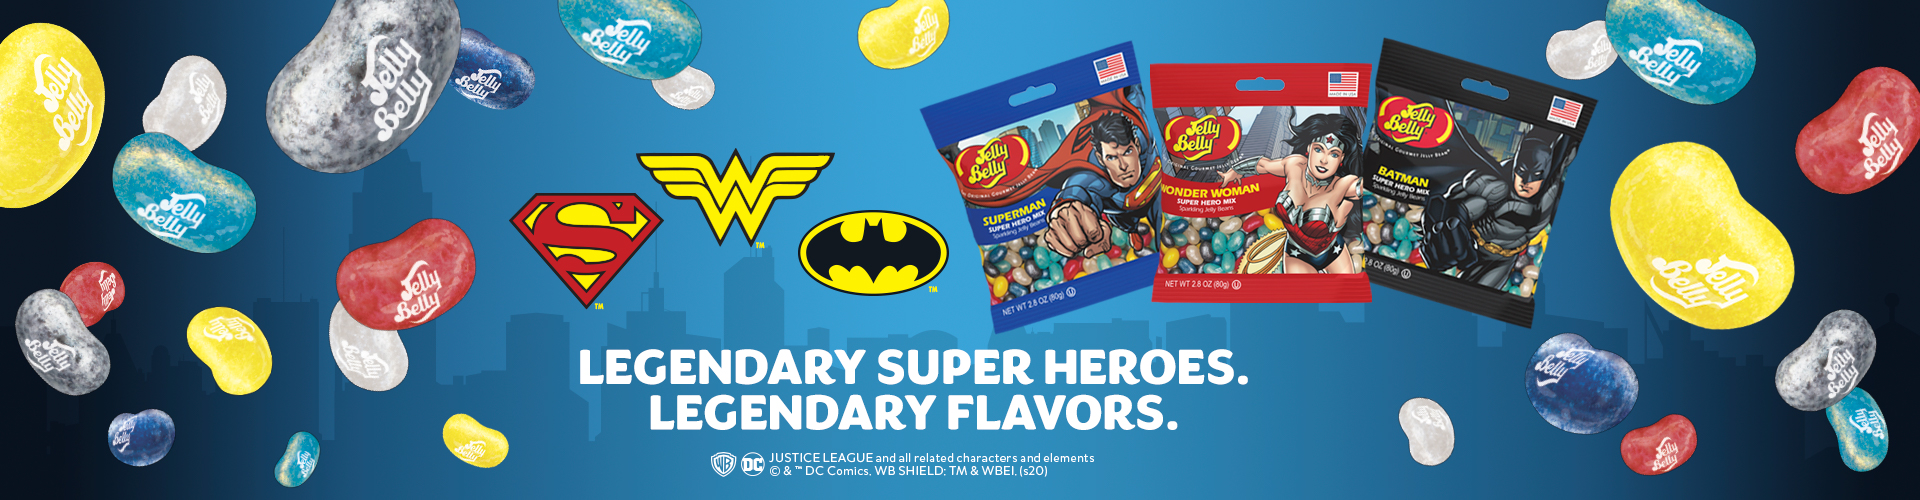 Superman, Wonder Woman, Batman logos with Superman, Batman, Wonder Woman 3.5 oz Grab & Go Bags with captions: Legendary Super Heroes. Legendary Flavors.